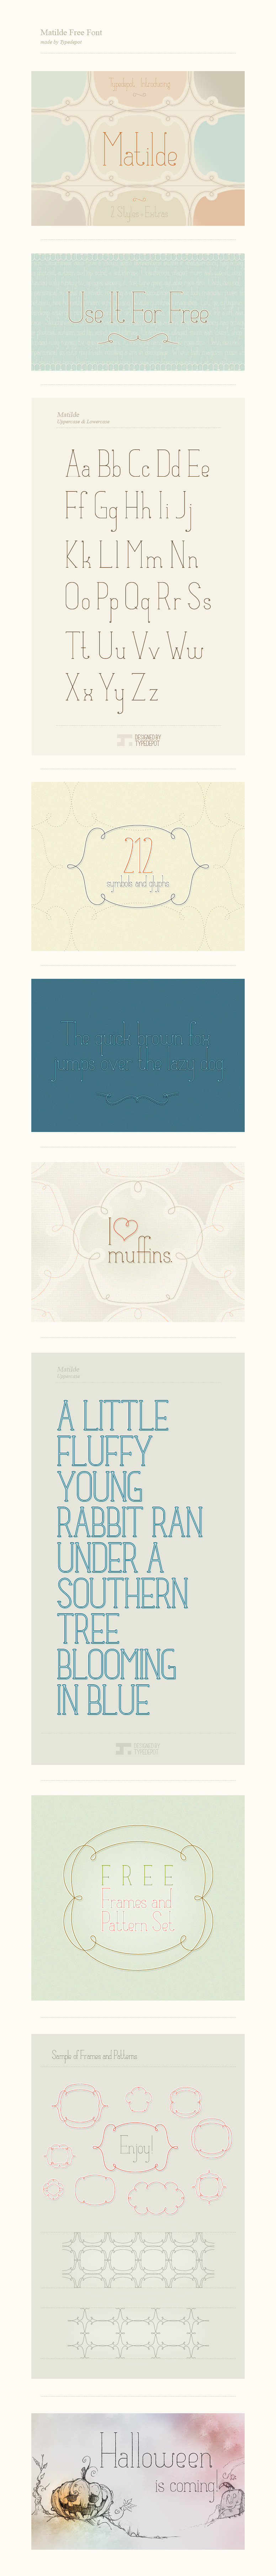 Matilde – Free Ultra-Thin Font Poster A